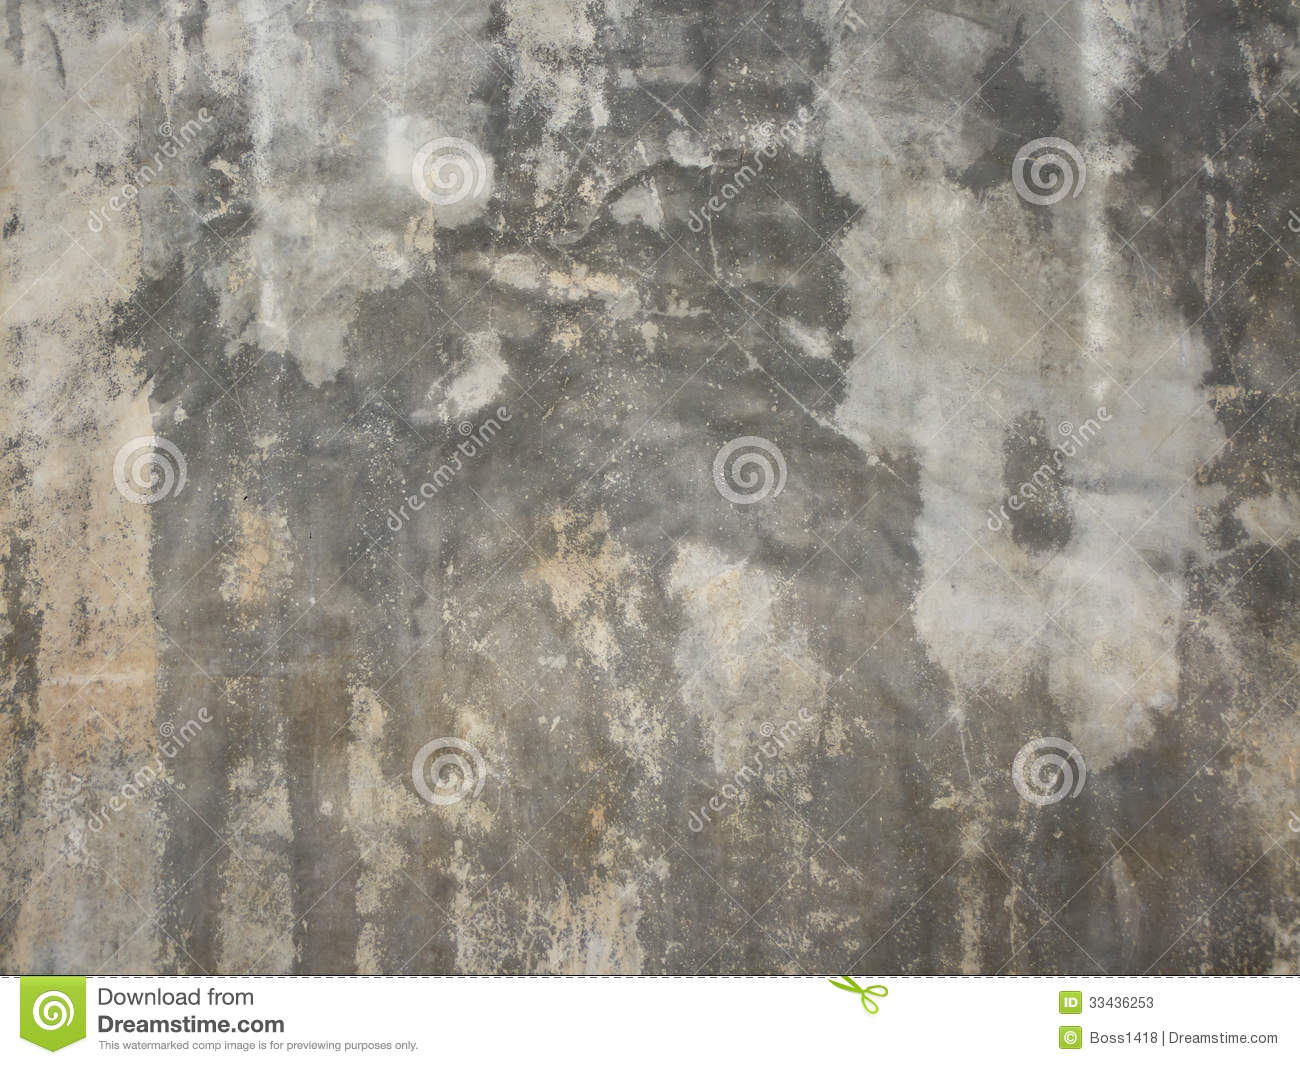 background surface stain - photo #18